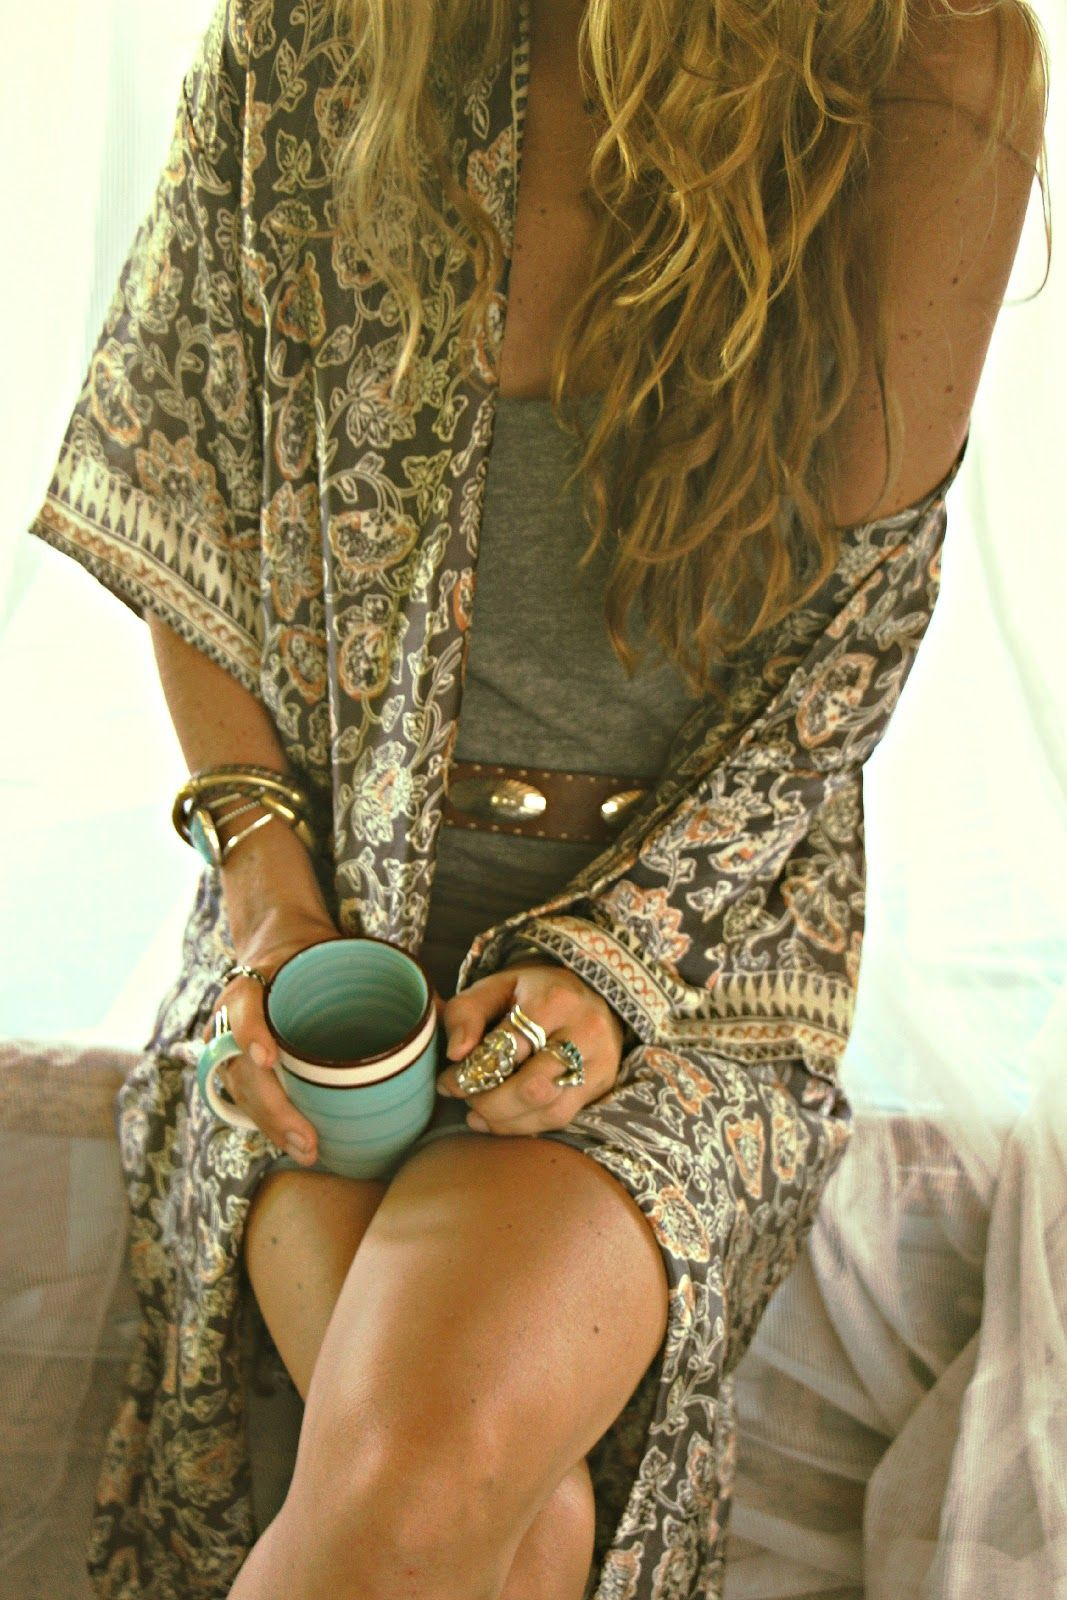 25 boho fashion styles for spring/summer 2017 - boohoo outfit